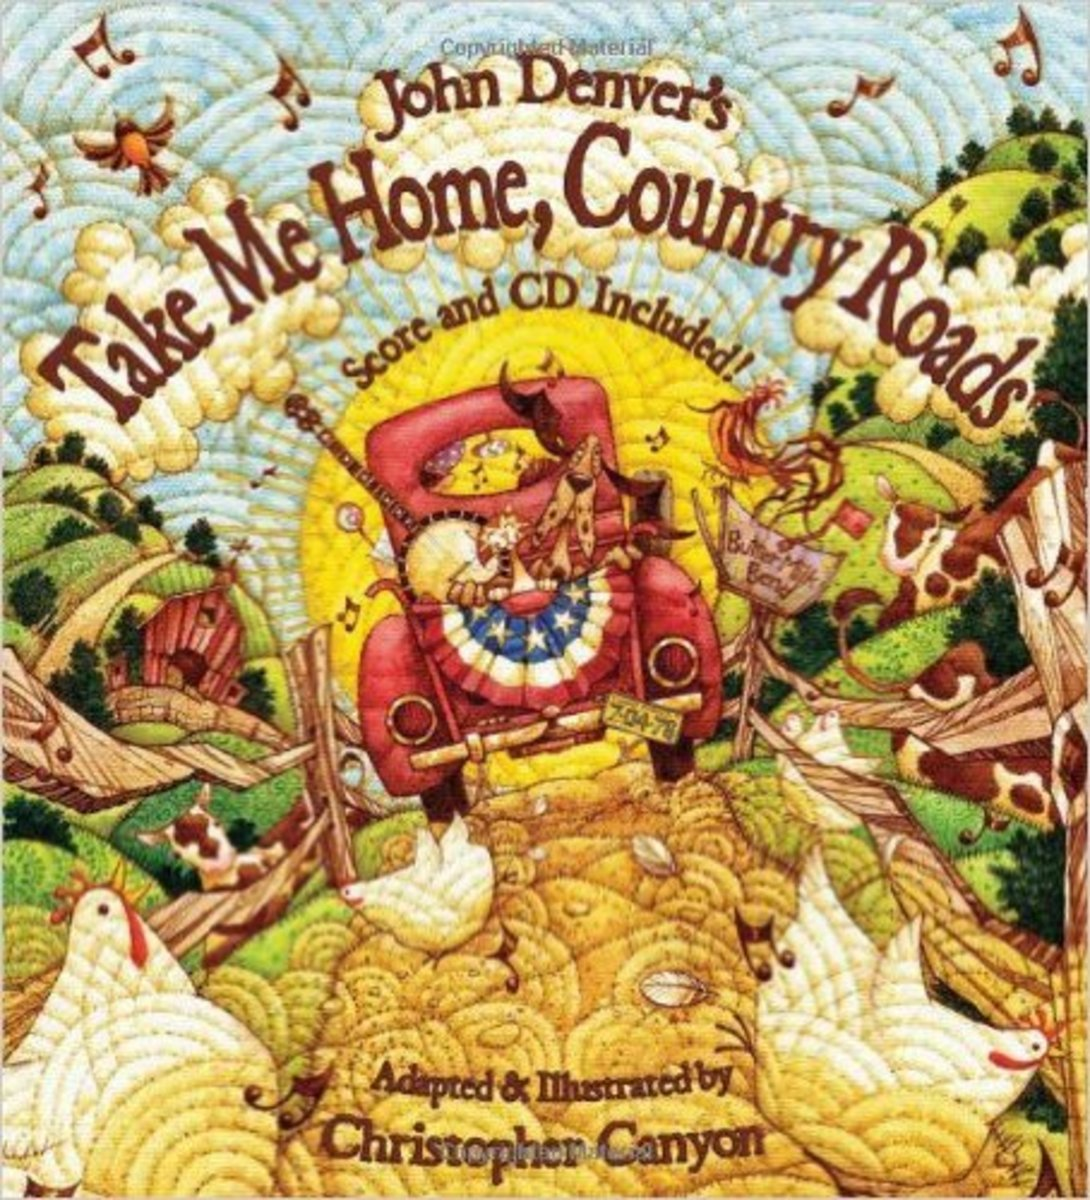 John Denver's Take Me Home, Country Roads (Audio CD Included) (The John Denver & Kids Series) by John Denver - Images are from amazon.com.